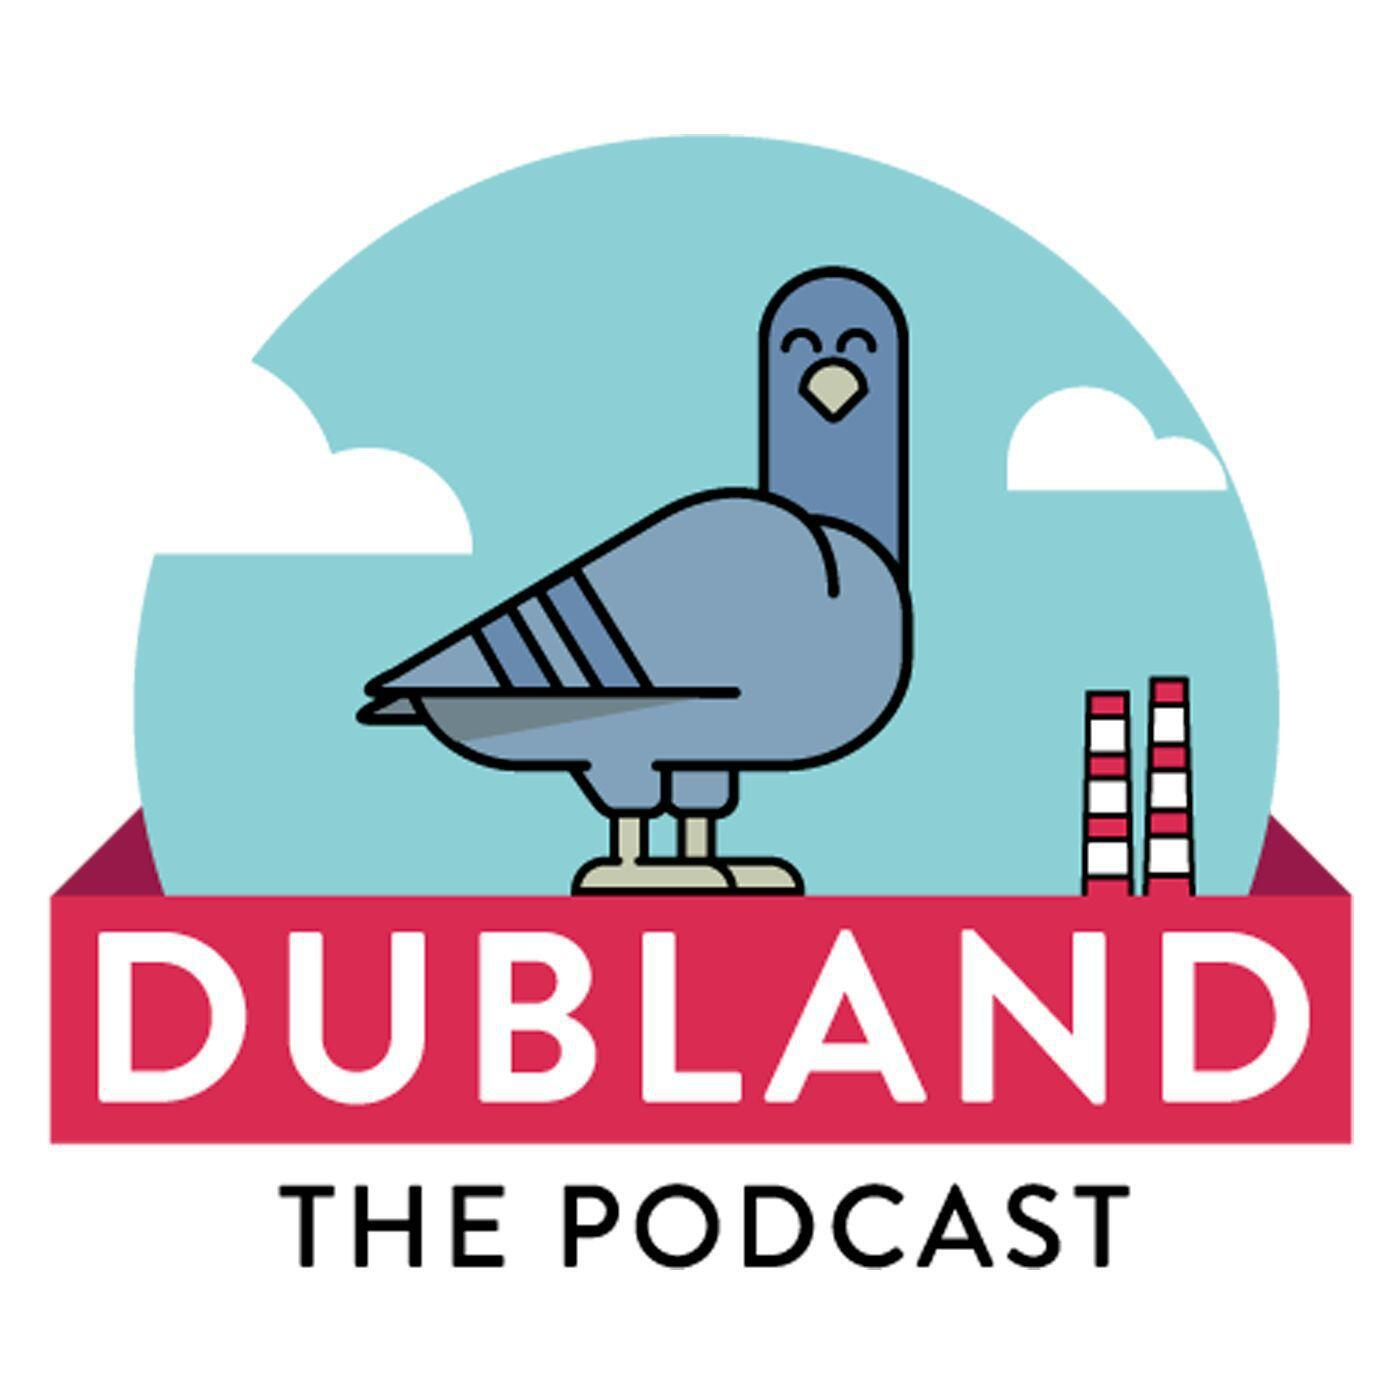 DUBLAND THE PODCAST EPISODE 17